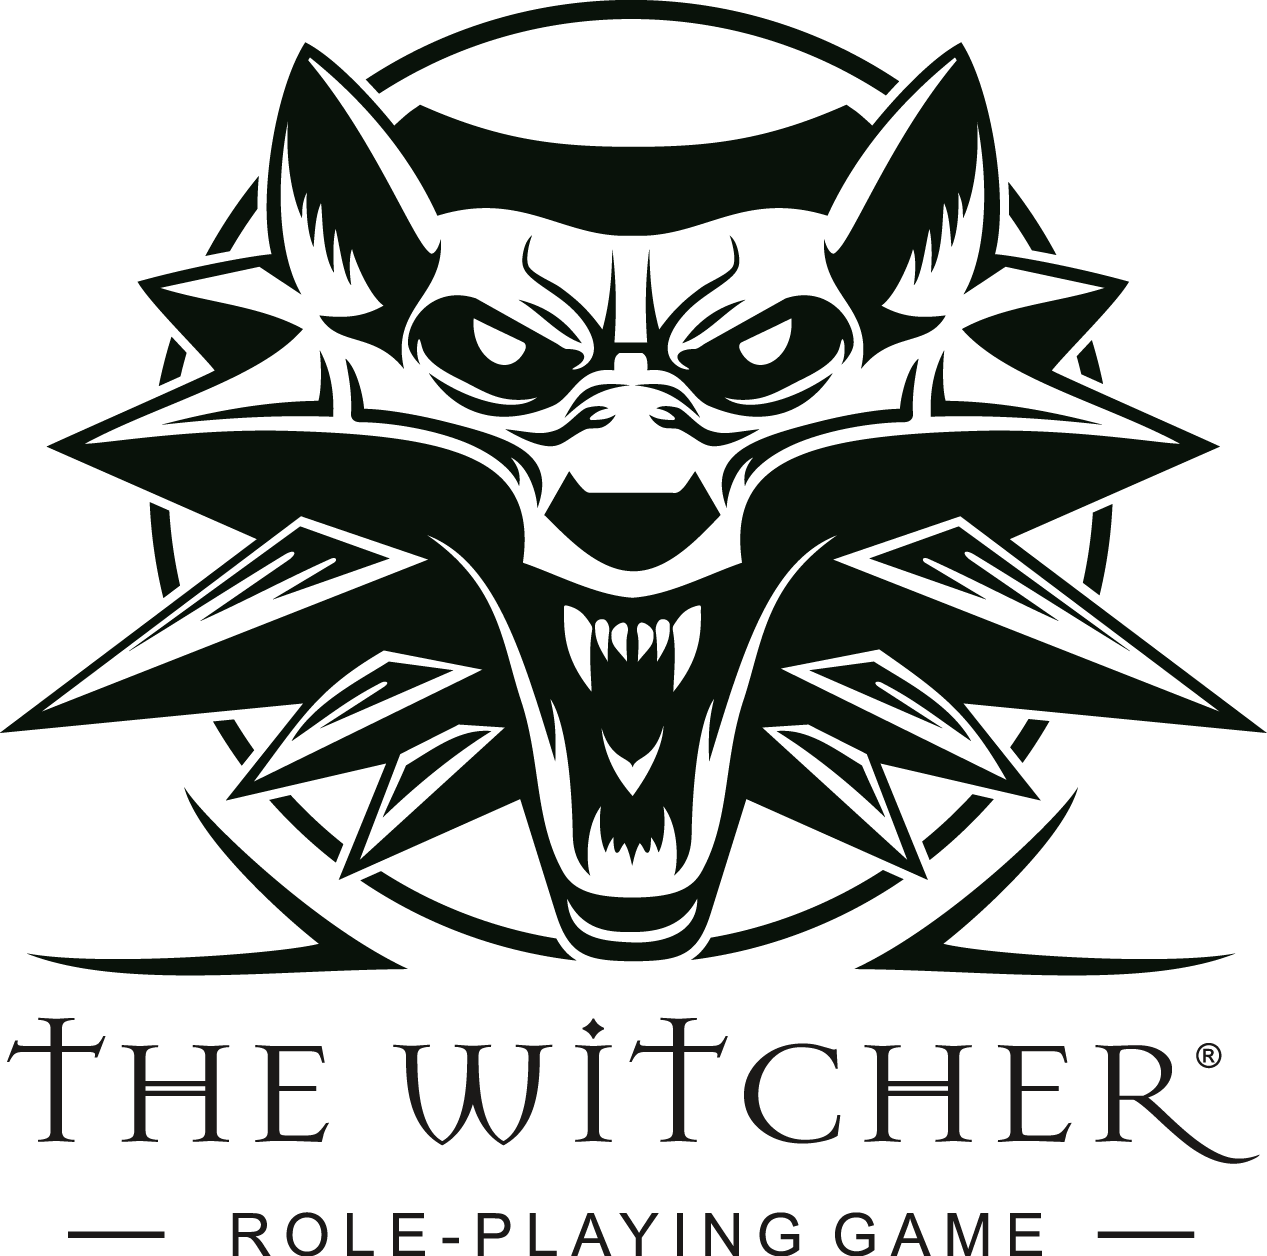 Witcher logo